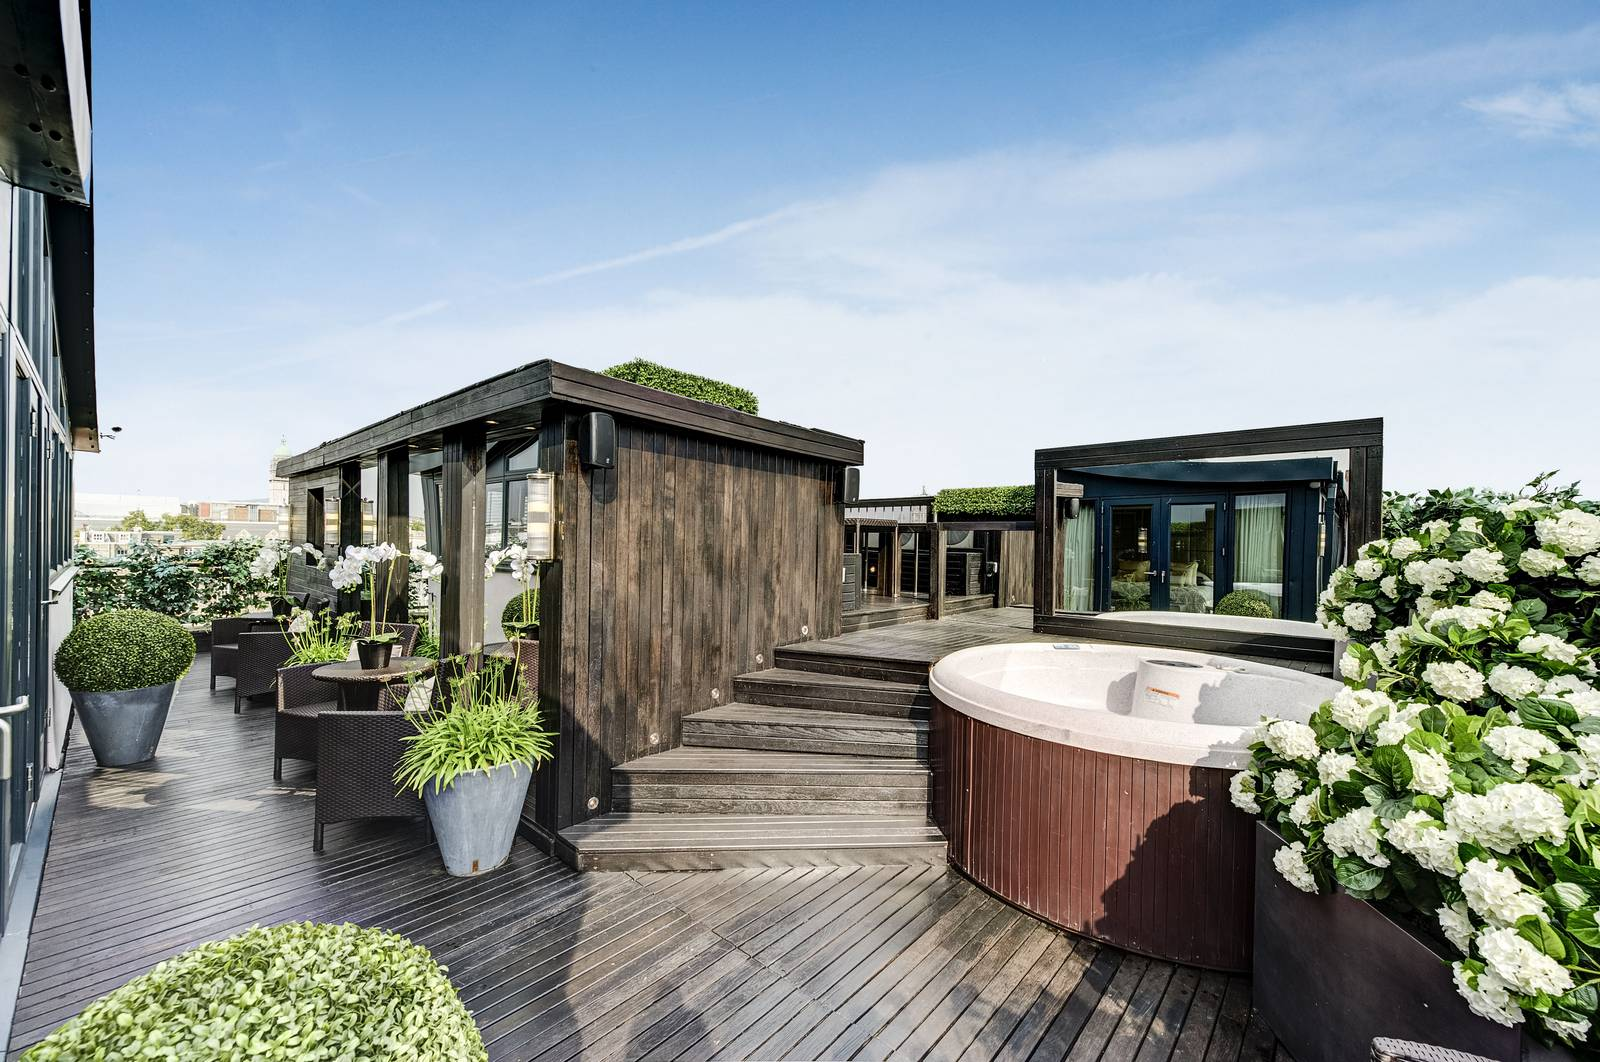 15 Million Apartment in London With Panoramic Roof Terrace GTspirit